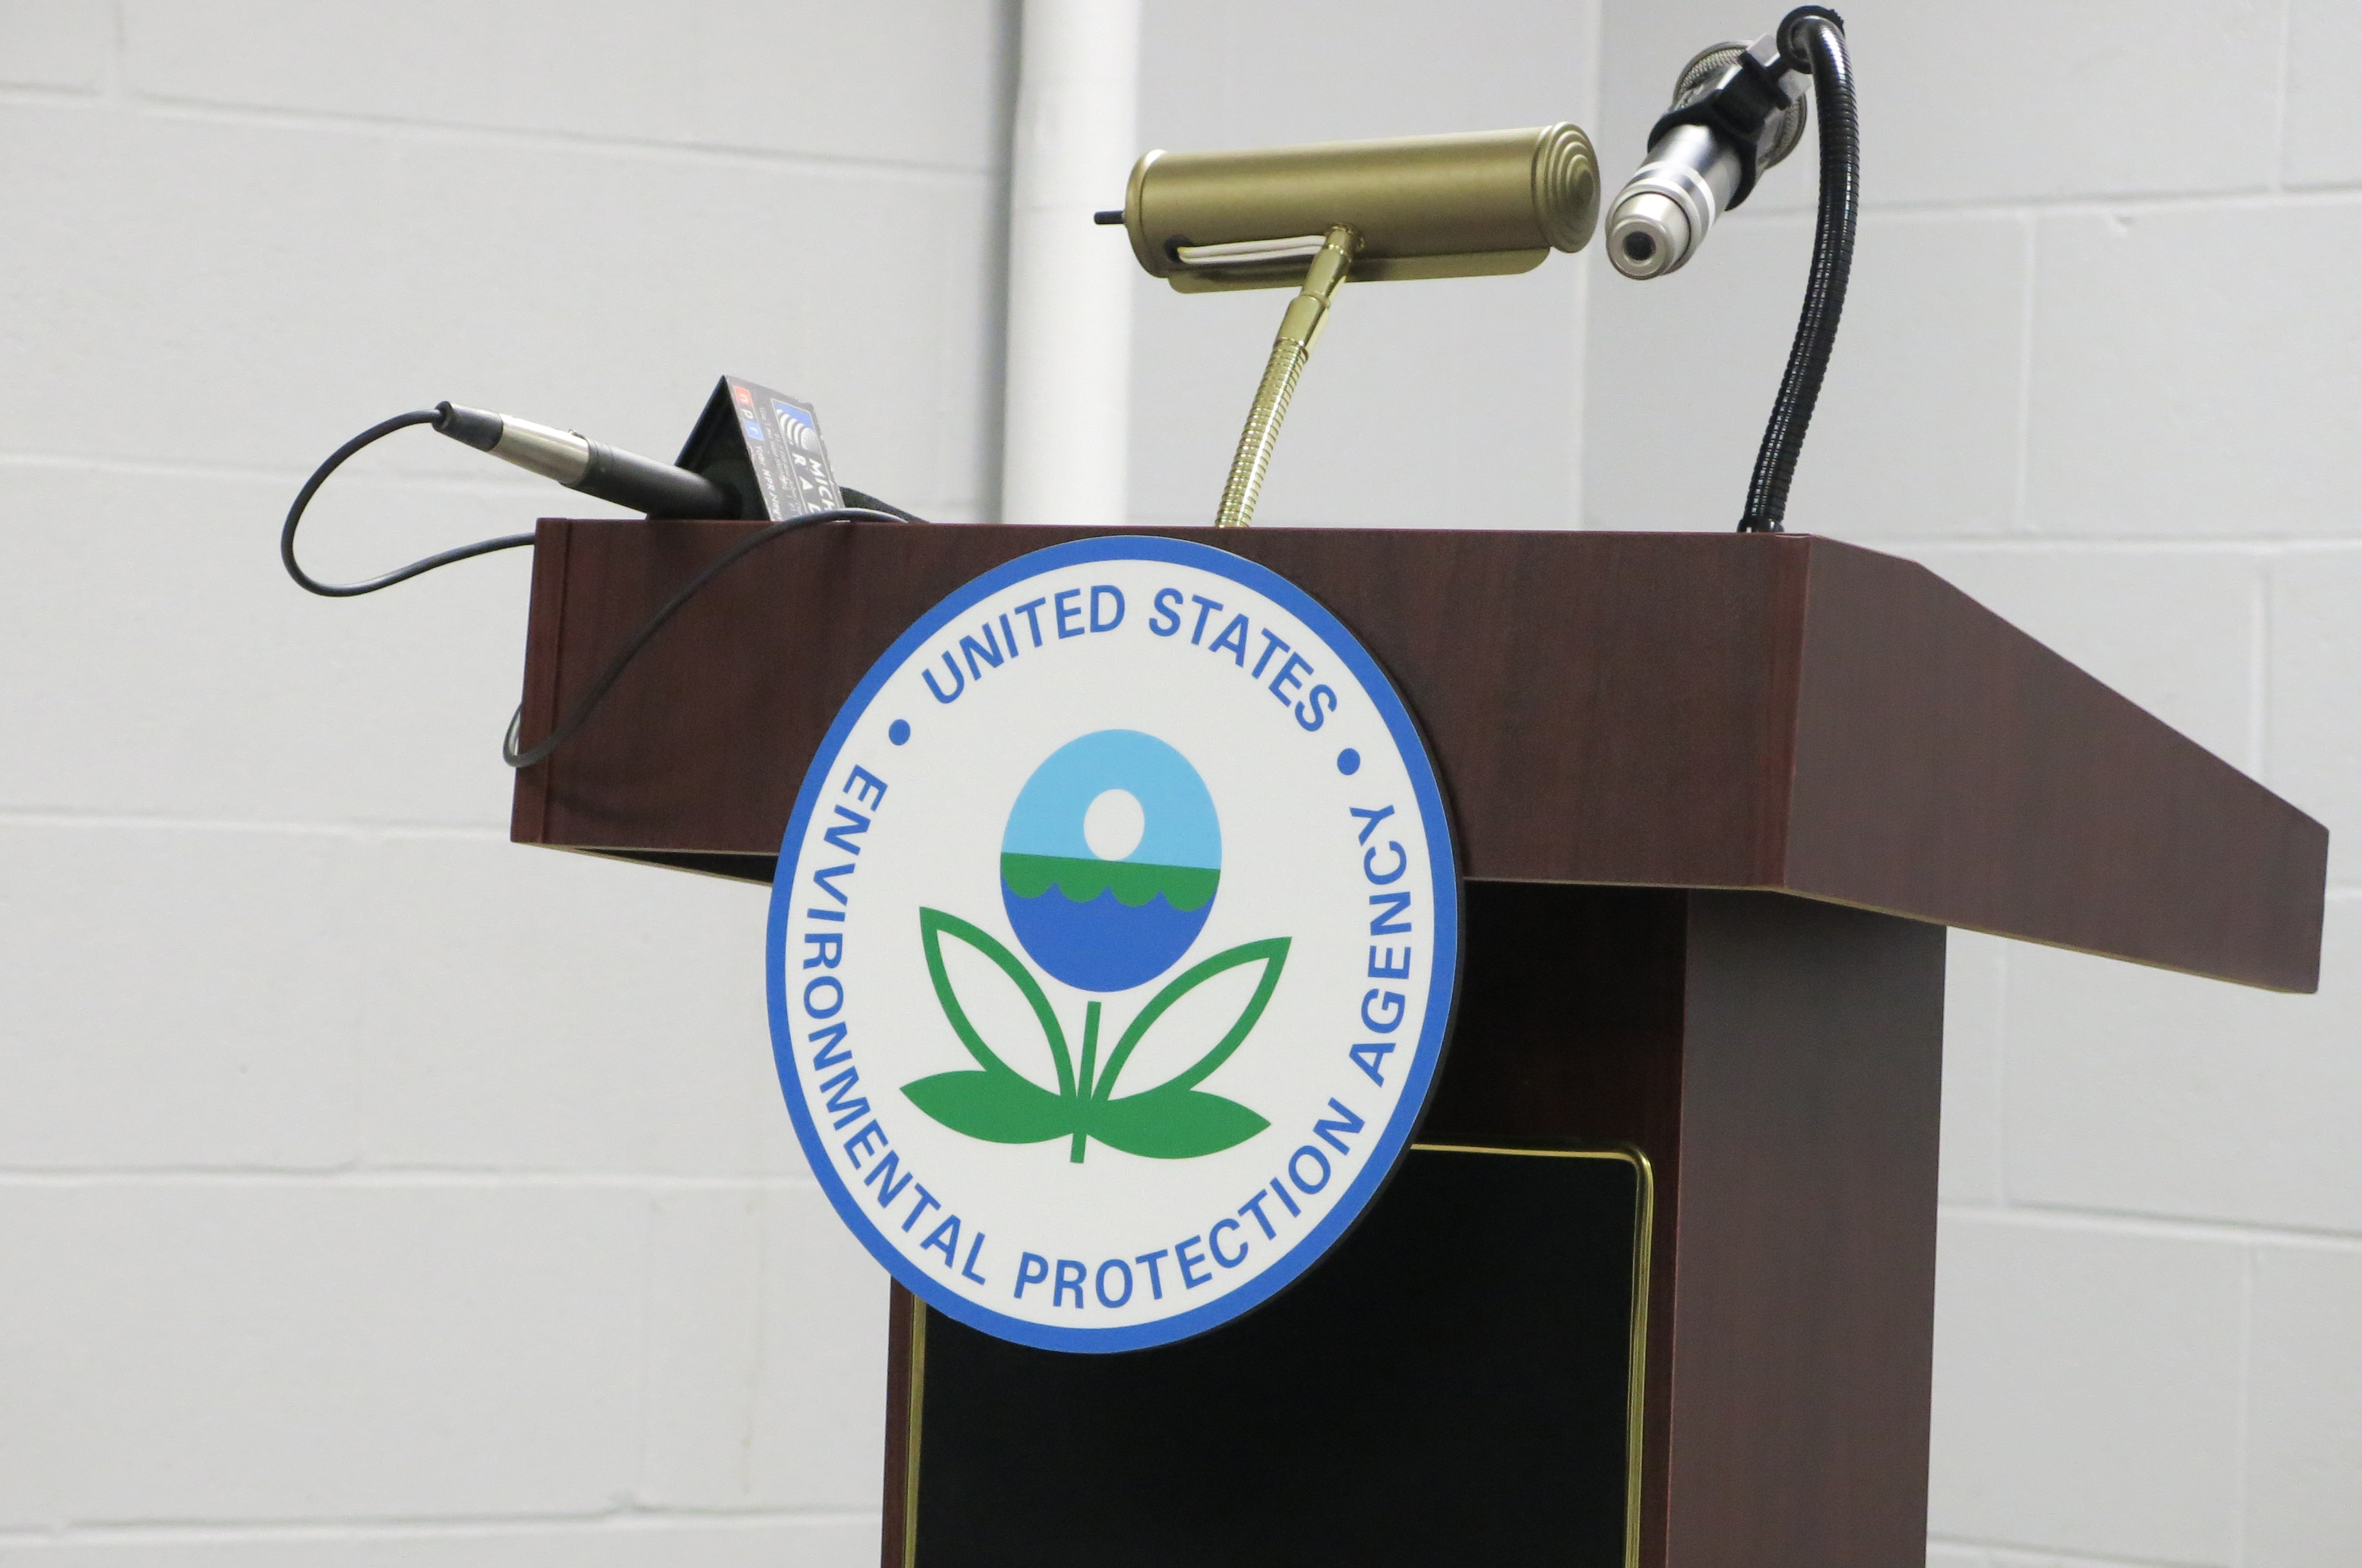 Epa Claims It Will Get More Unpredictable On Emissions